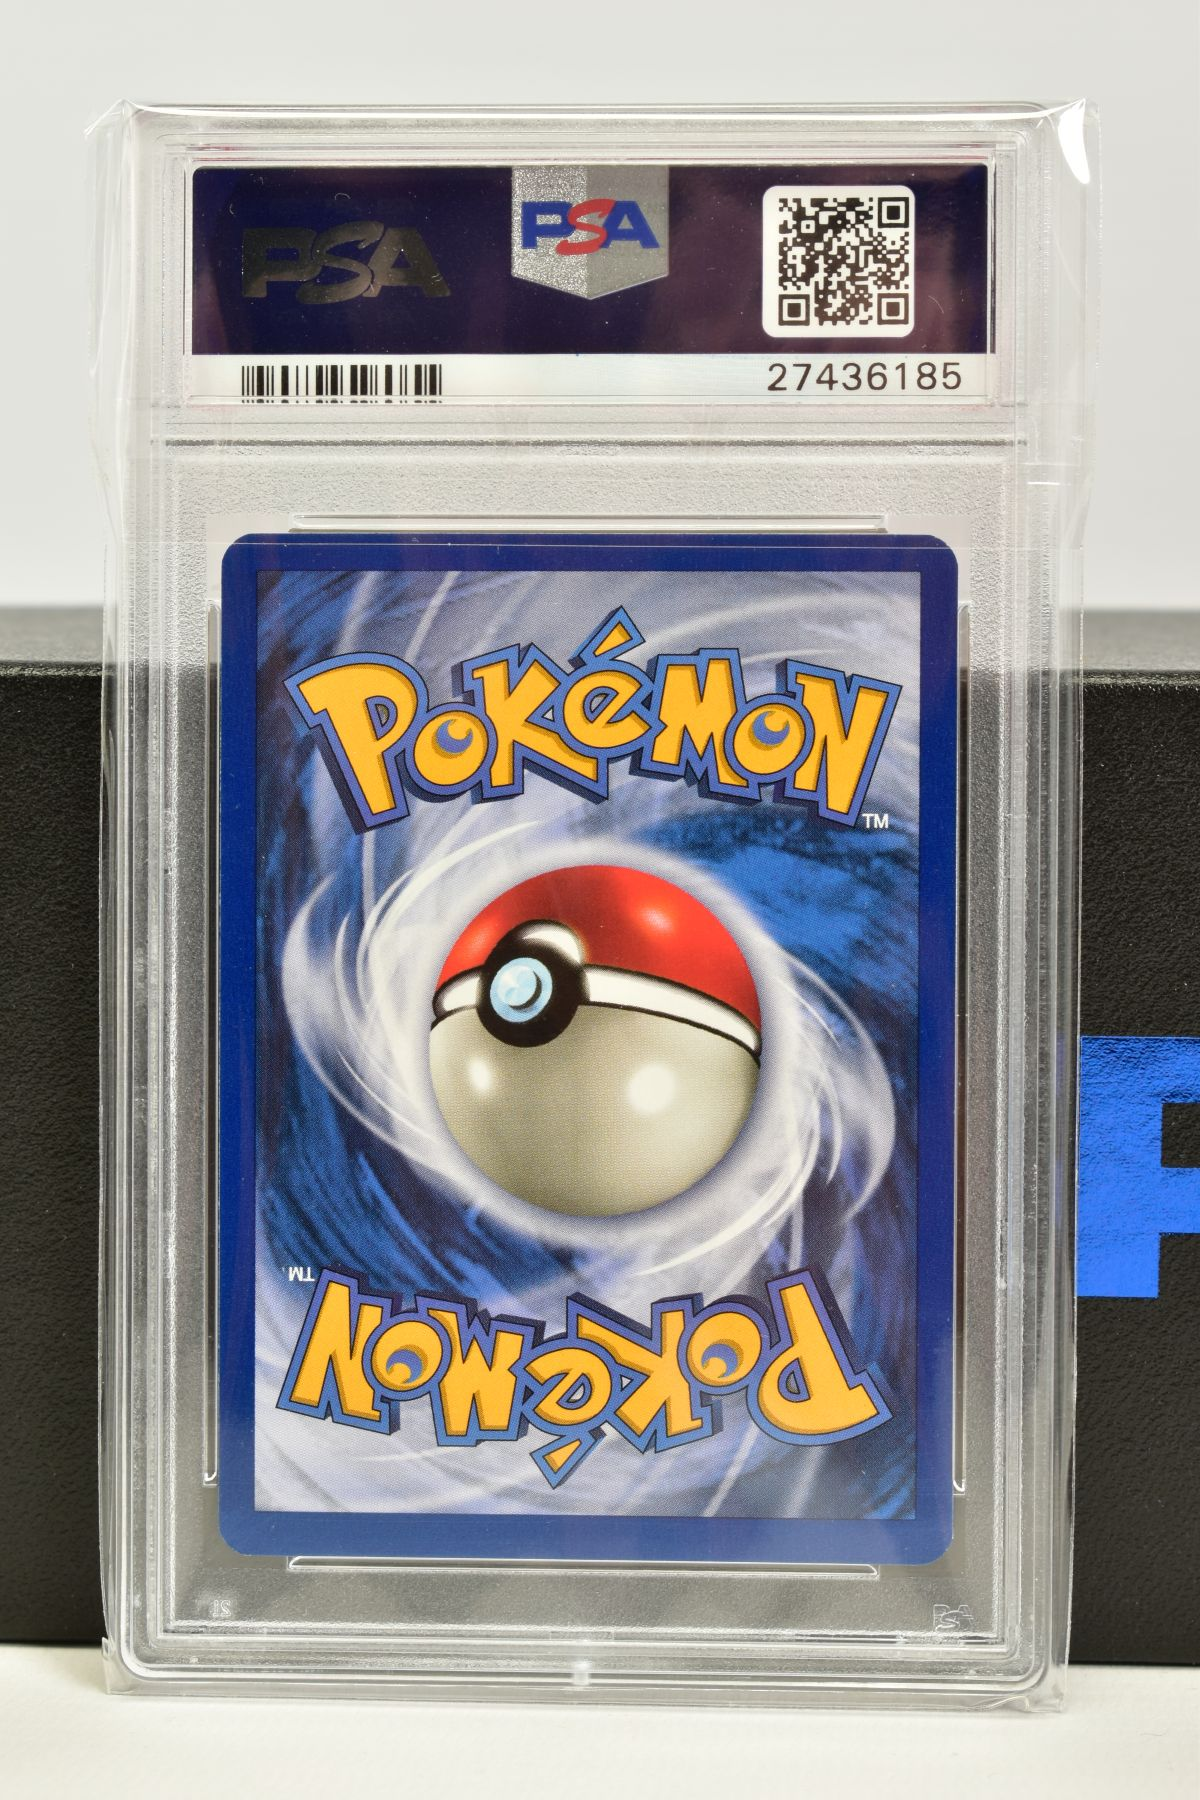 A PSA GRADED POKEMON 1ST EDITION FOSSIL SET DRAGONITE HOLO CARD, (4/62), graded GEM MINT 10 and - Image 2 of 2